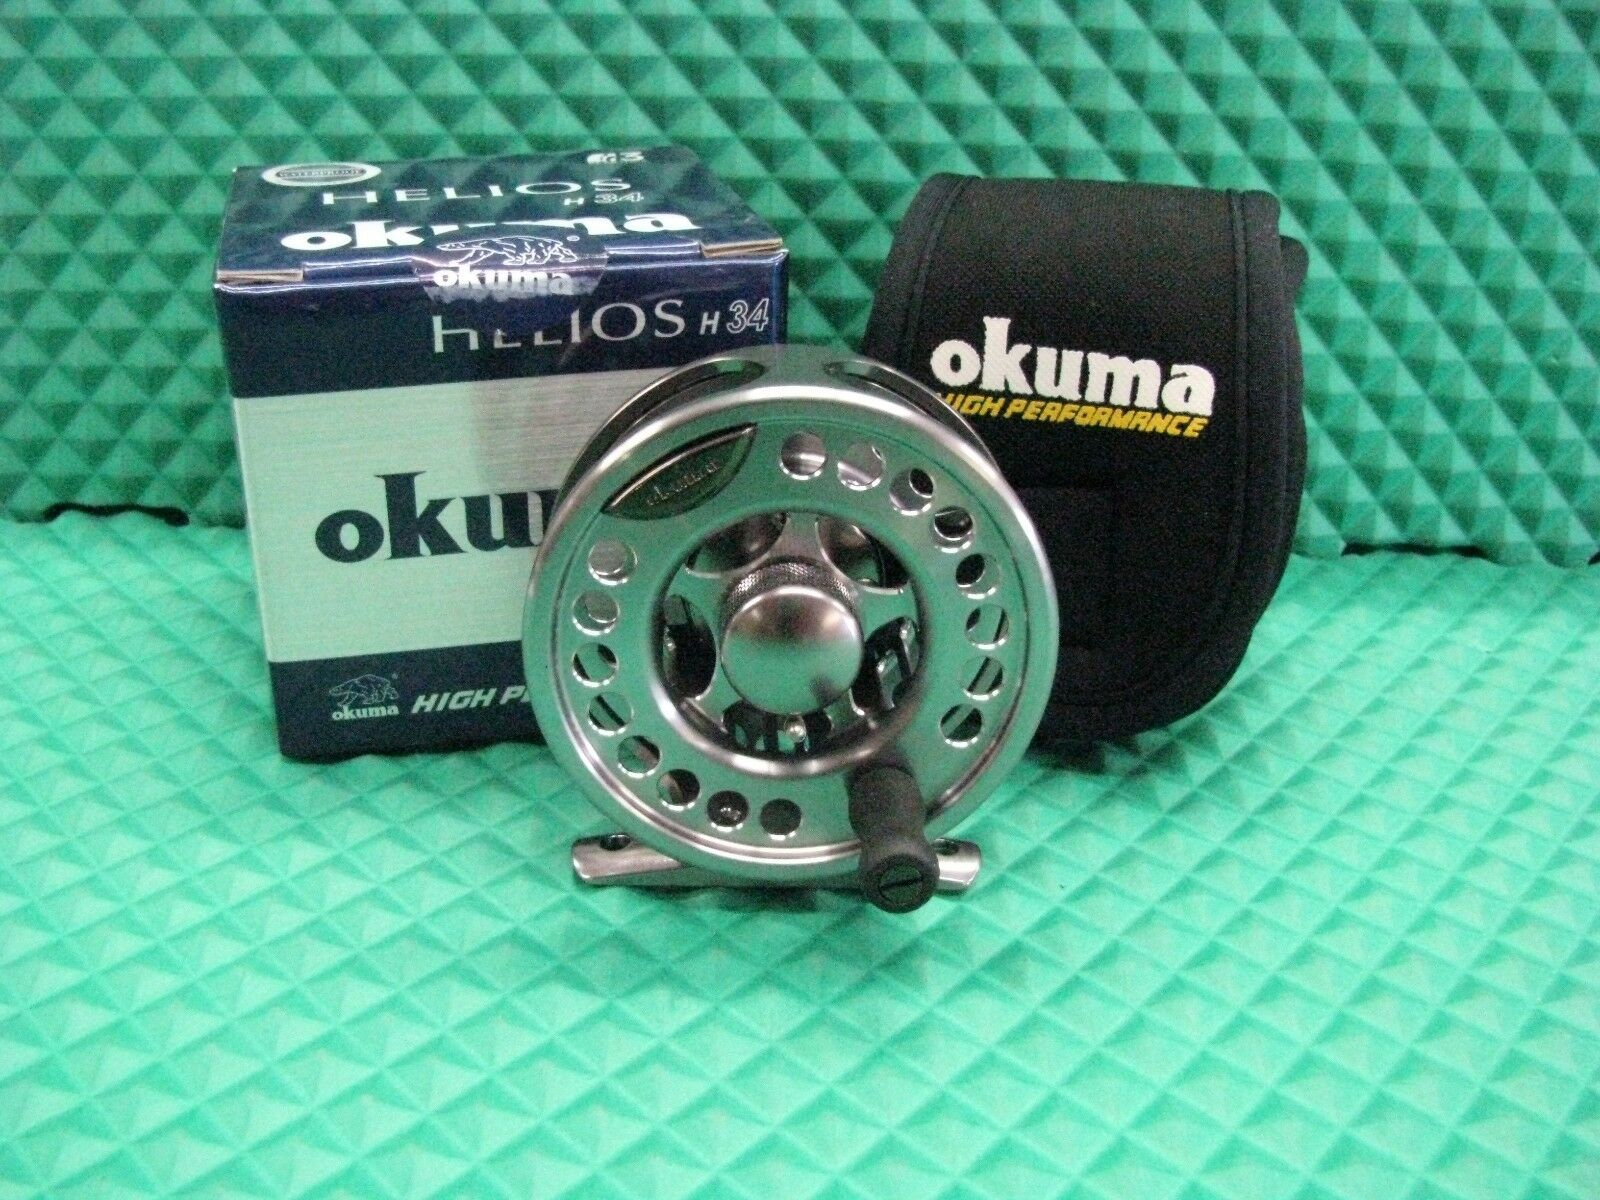 Okuma Helios H34 Waterproof Fly Fishing Reel Waterproof H34 Drag System Line Weight 3,4 0d450b